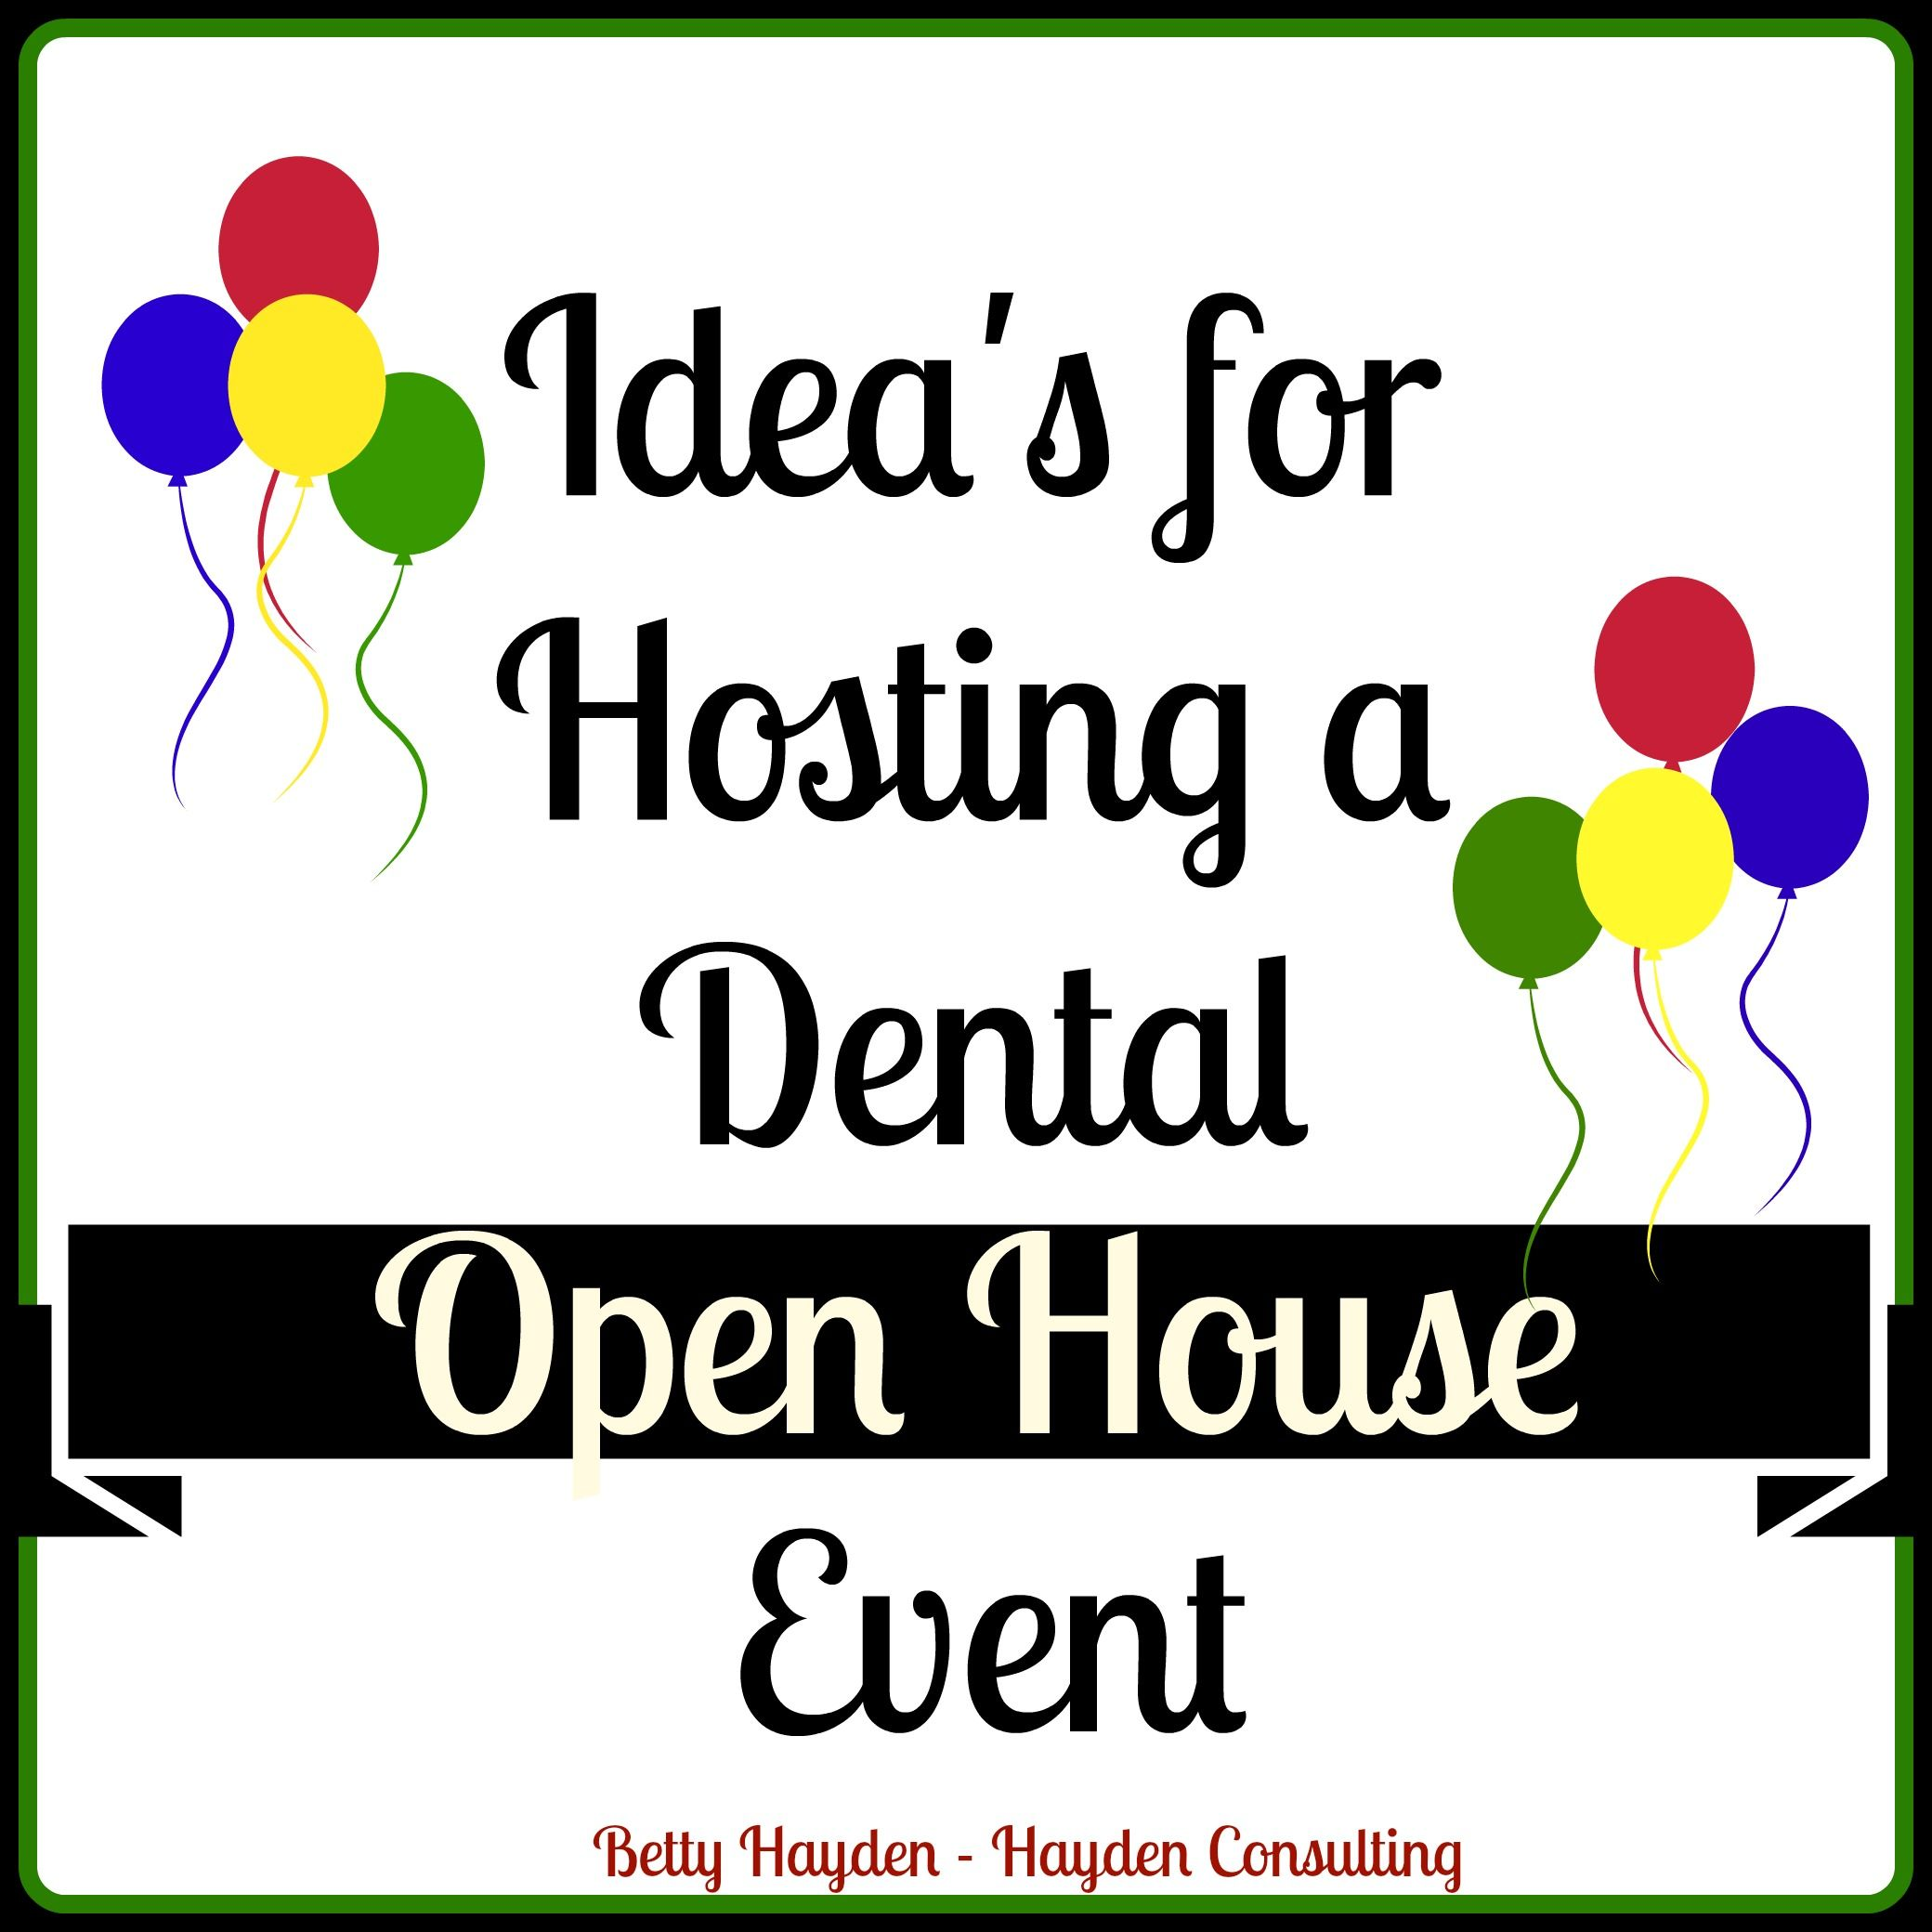 Dental Office Open House Event Ideas Event Themes Dental And